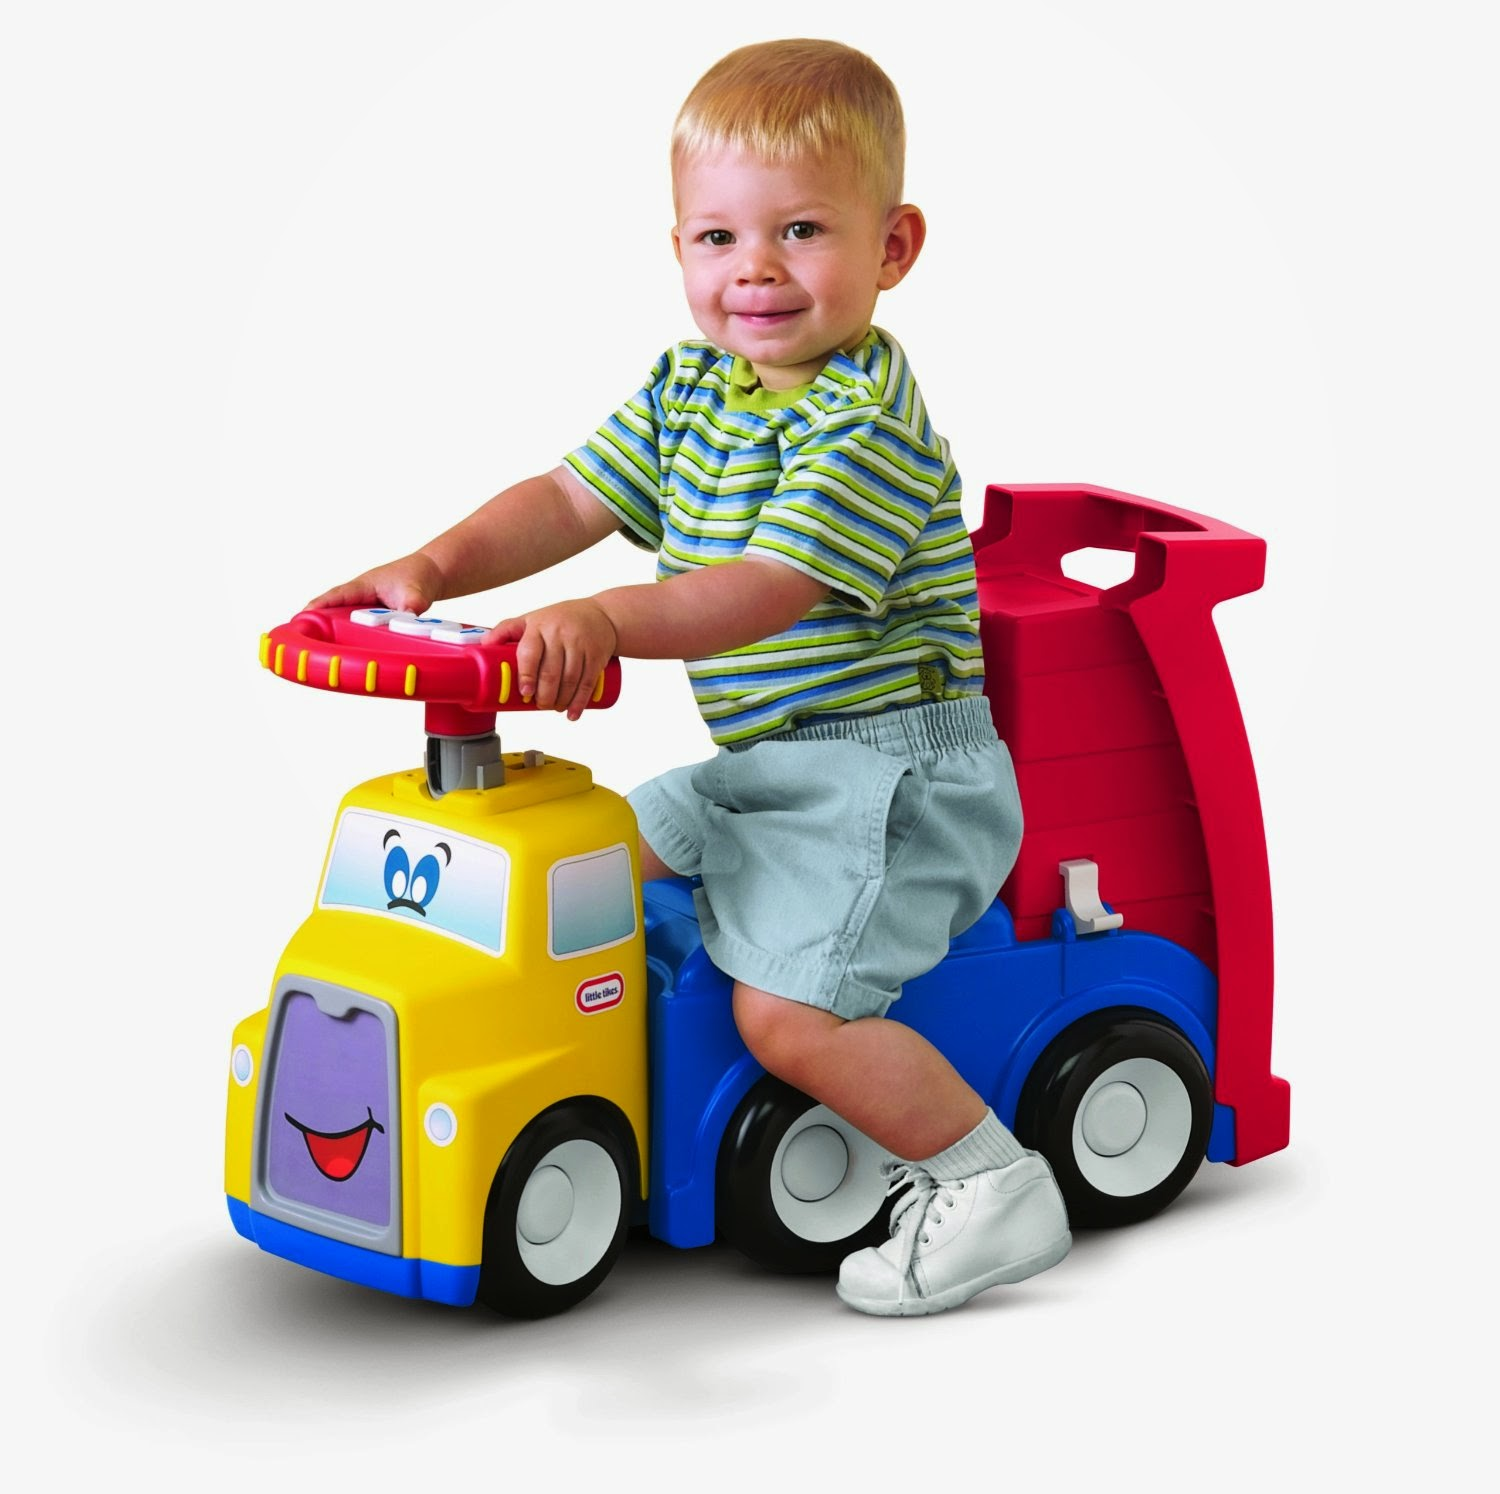 Boys Riding Toys For Toddlers : Toddler approved favorite ride on toys for toddlers